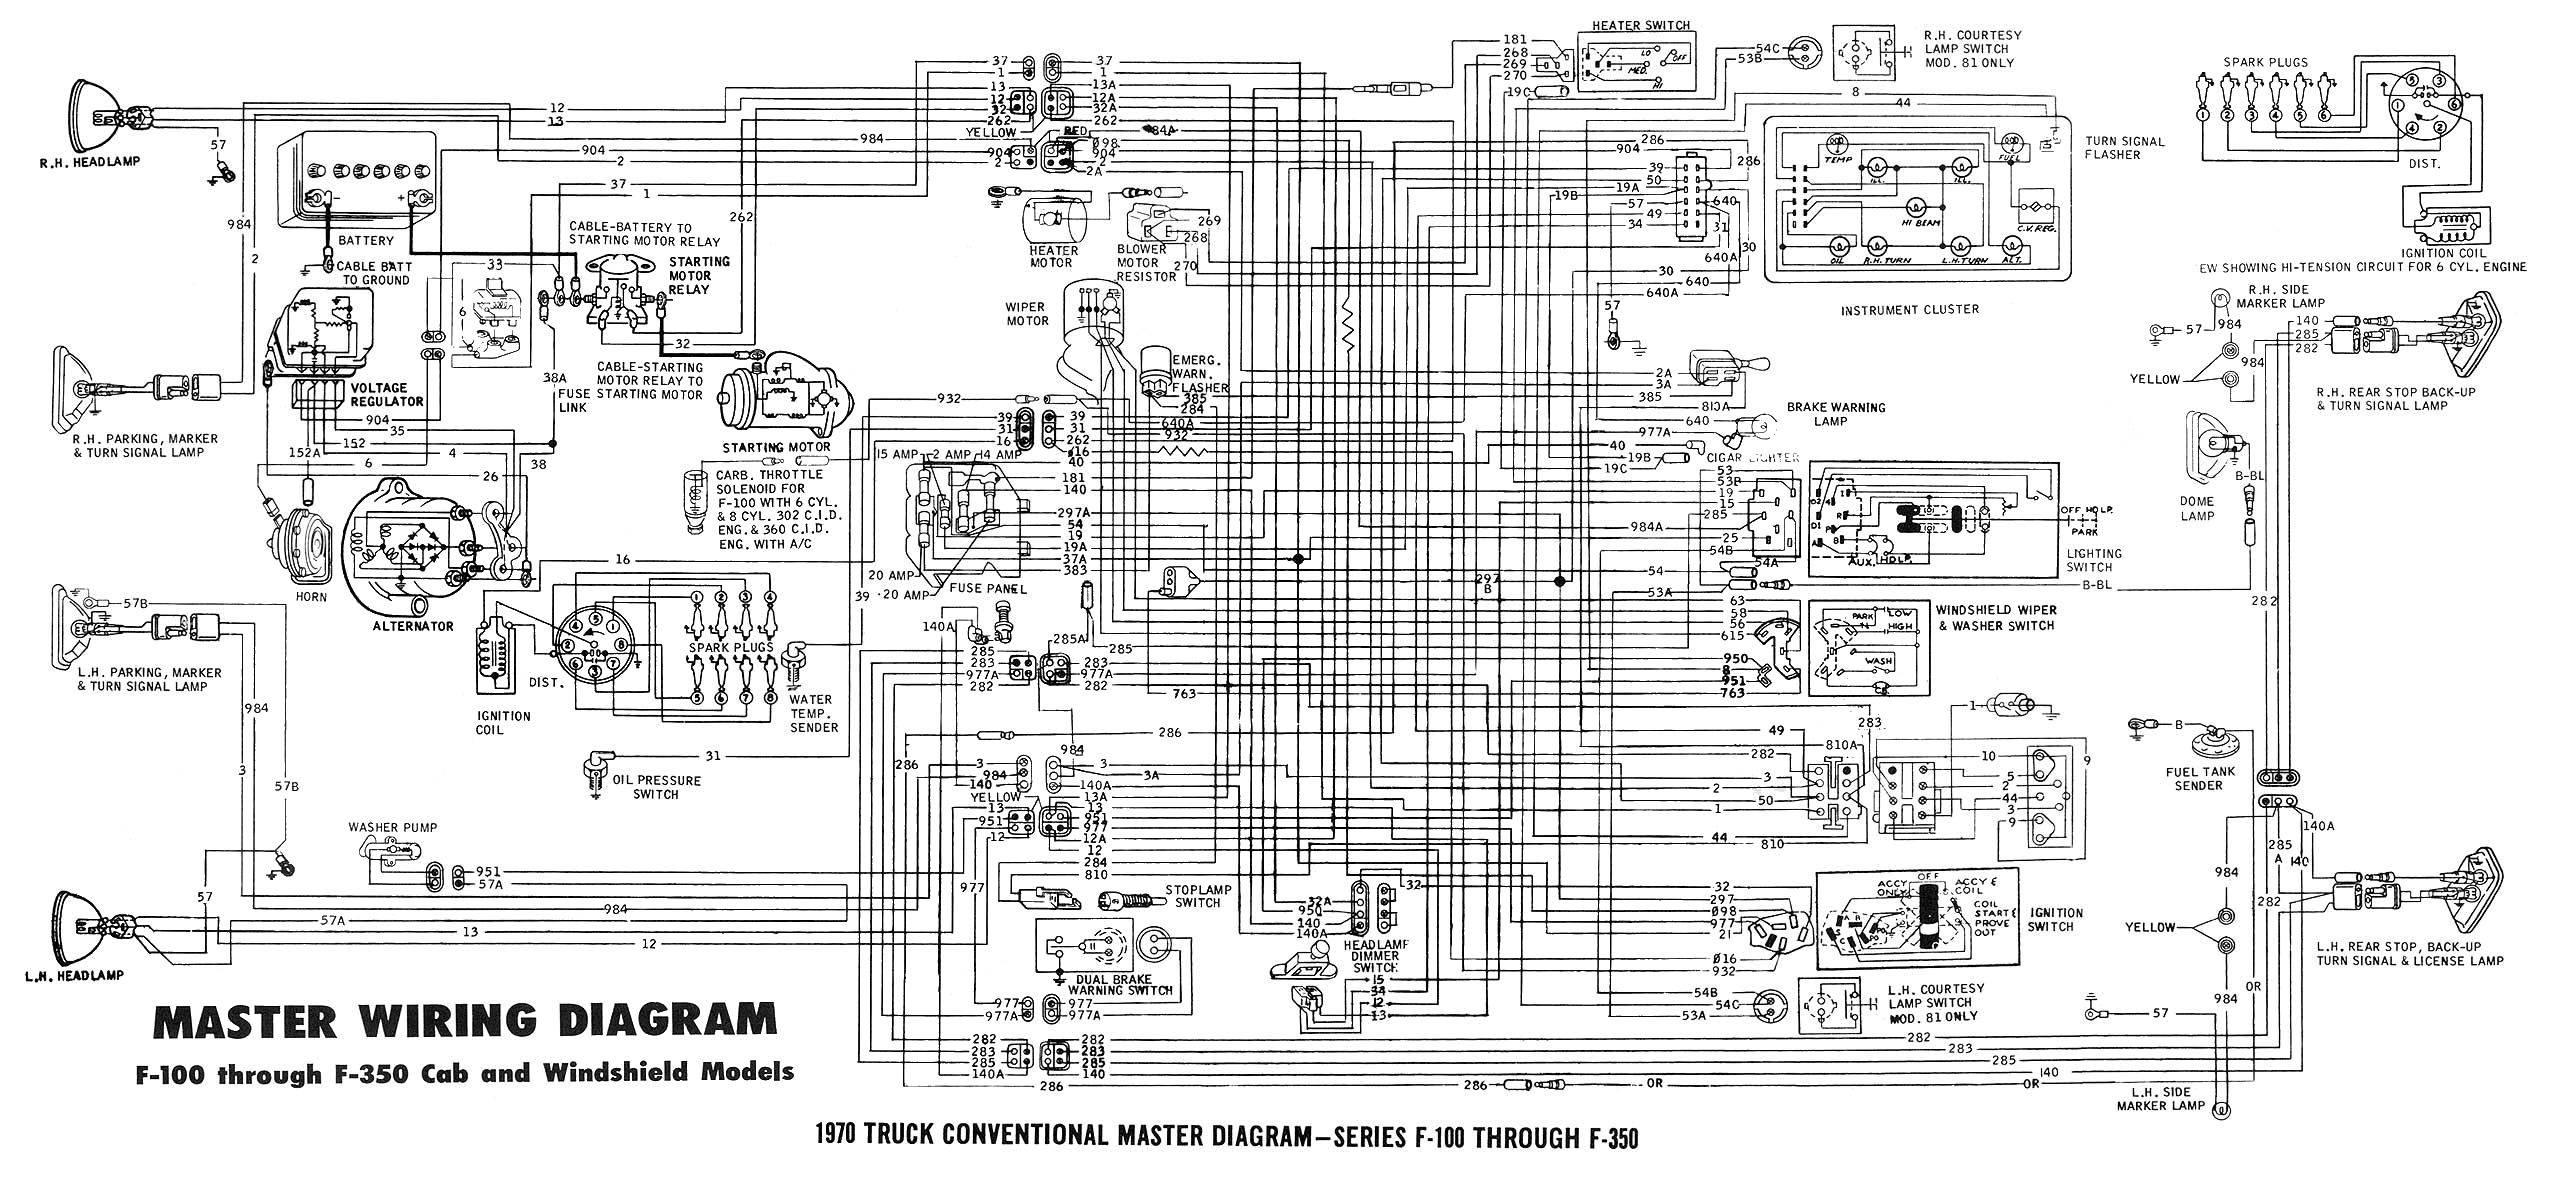 1975 dodge motorhome wiring diagram 1975 automotive wiring diagrams 1978 ford pickup wiring diagram opaktle